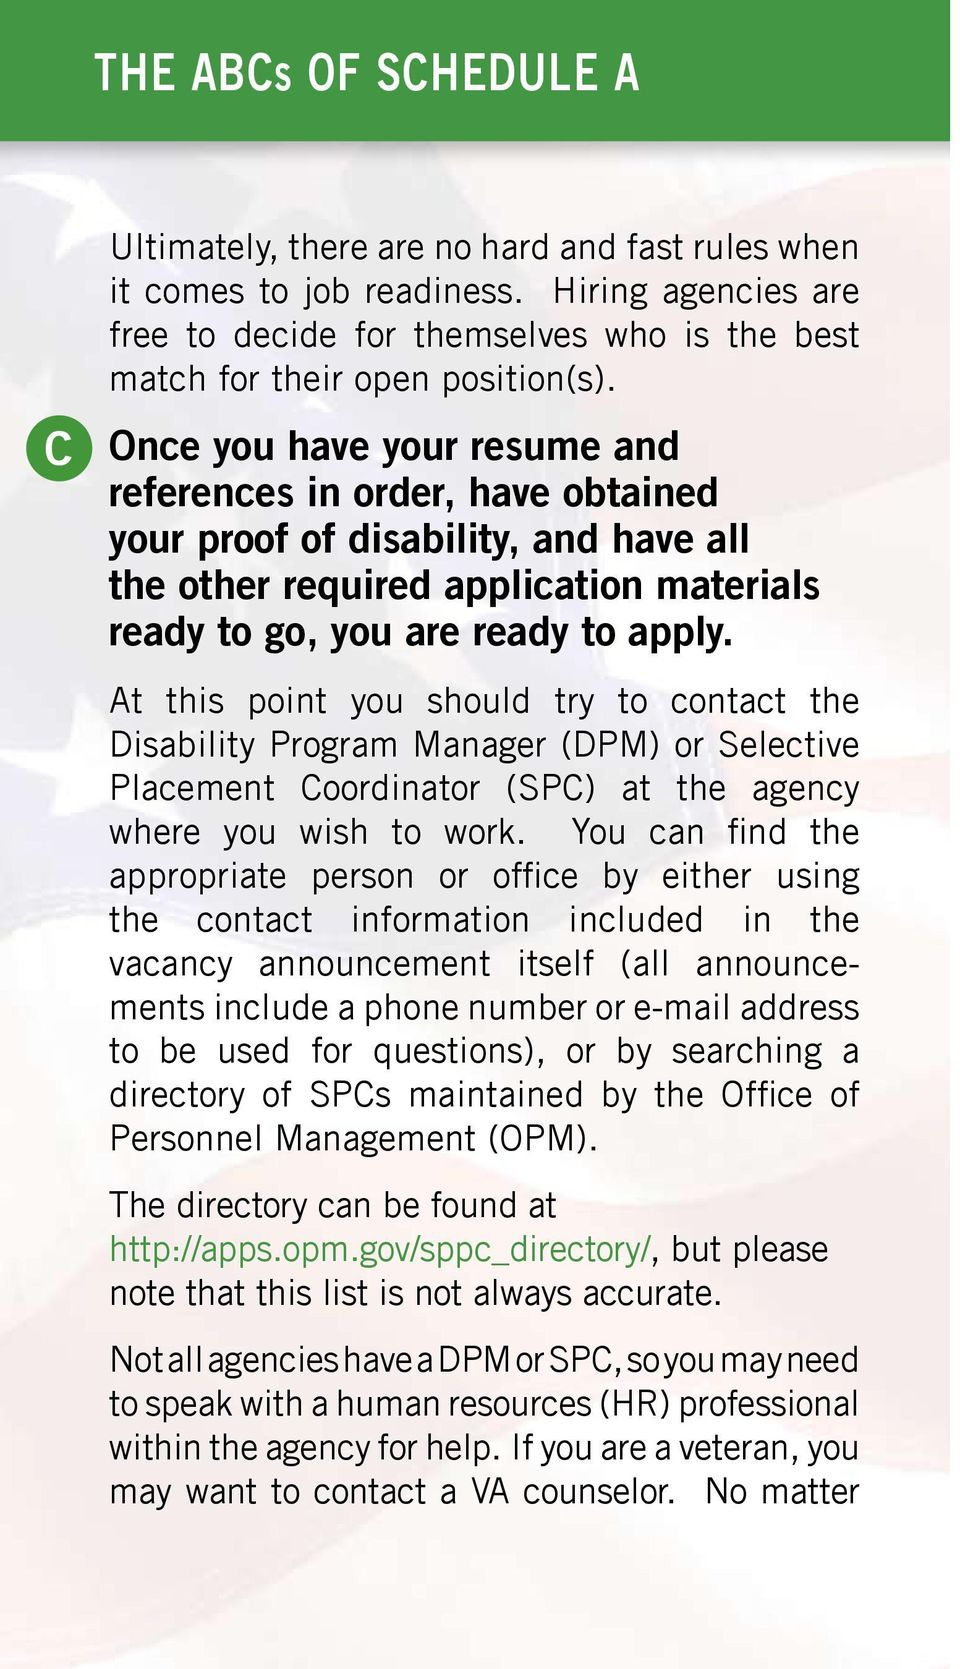 Once you have your resume and references in order, have obtained your proof of disability, and have all the other required application materials ready to go, you are ready to apply.